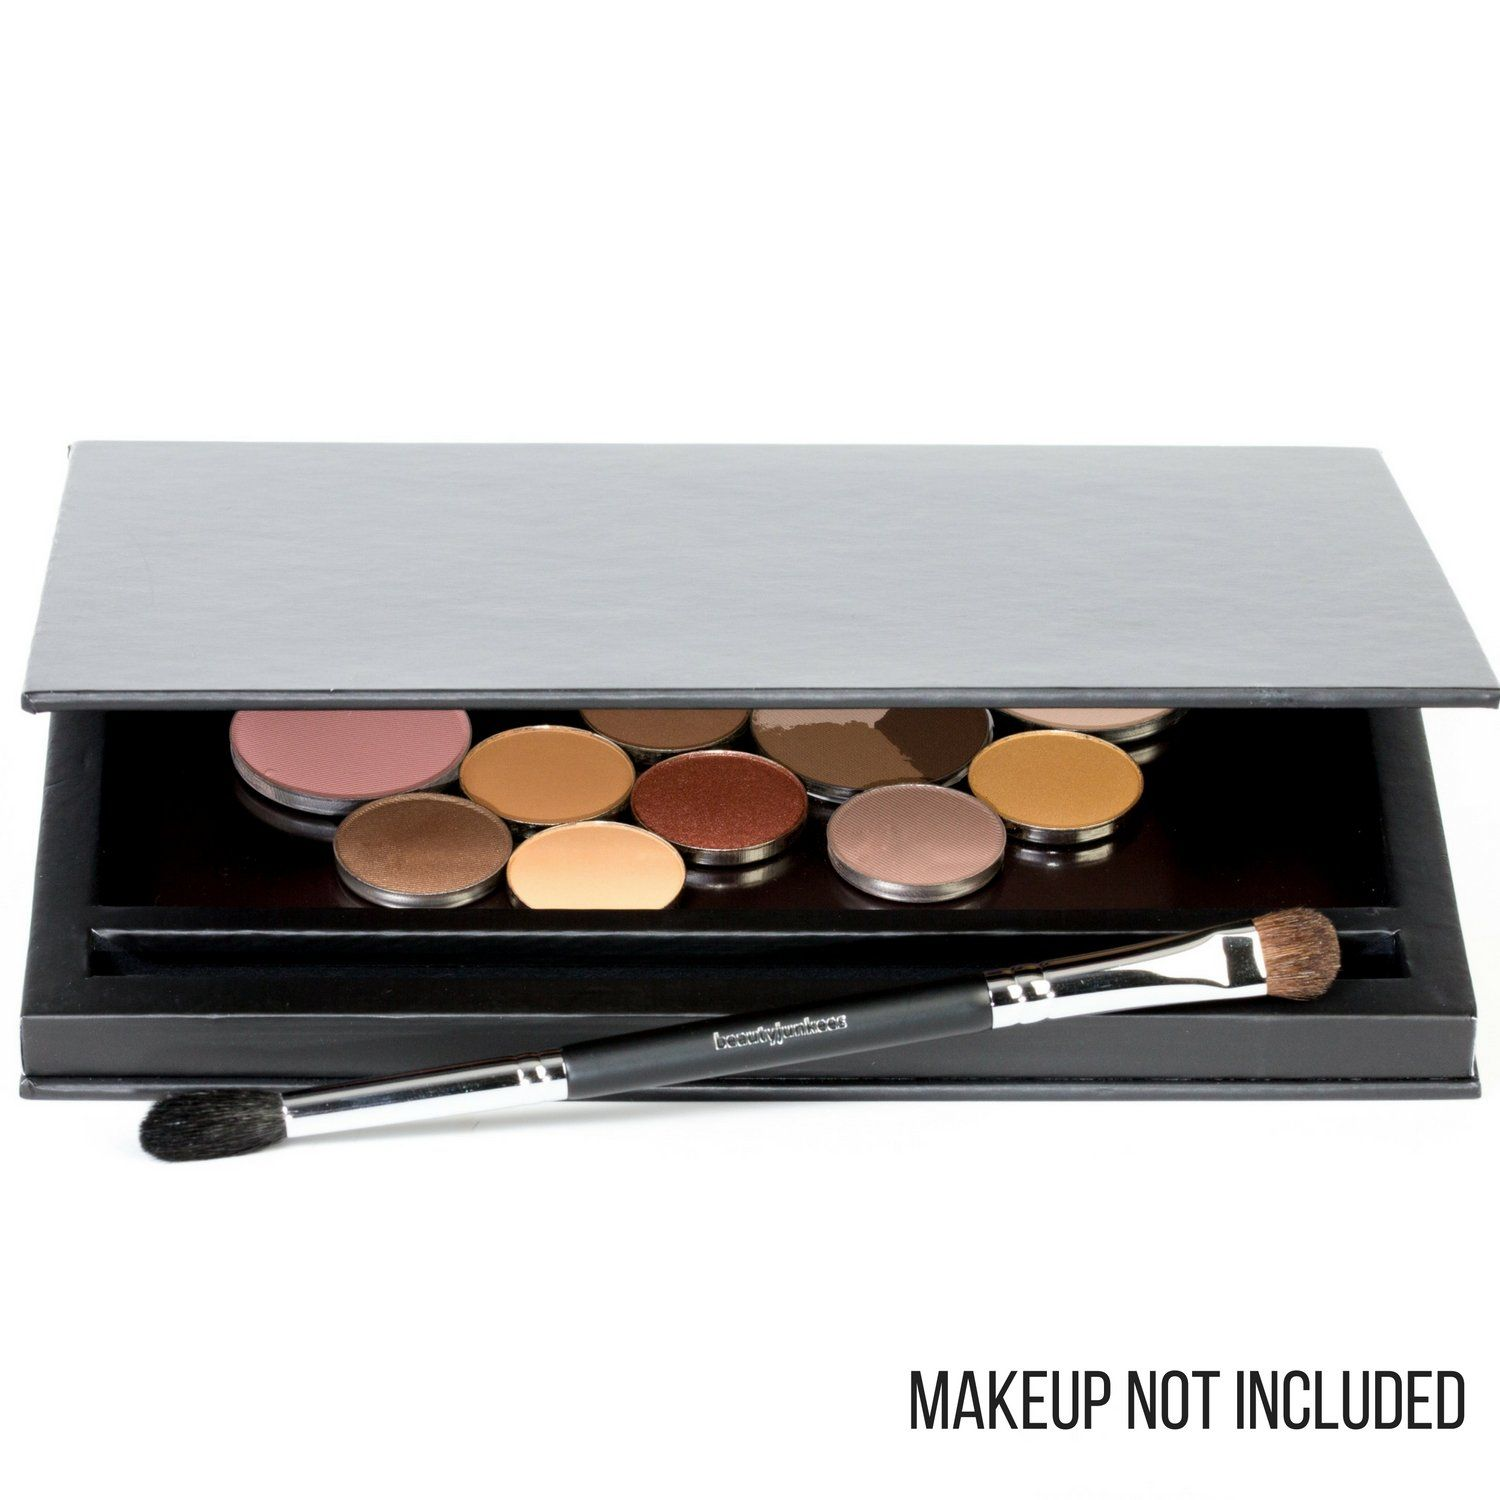 Large Black Empty Makeup Palette with Mirror